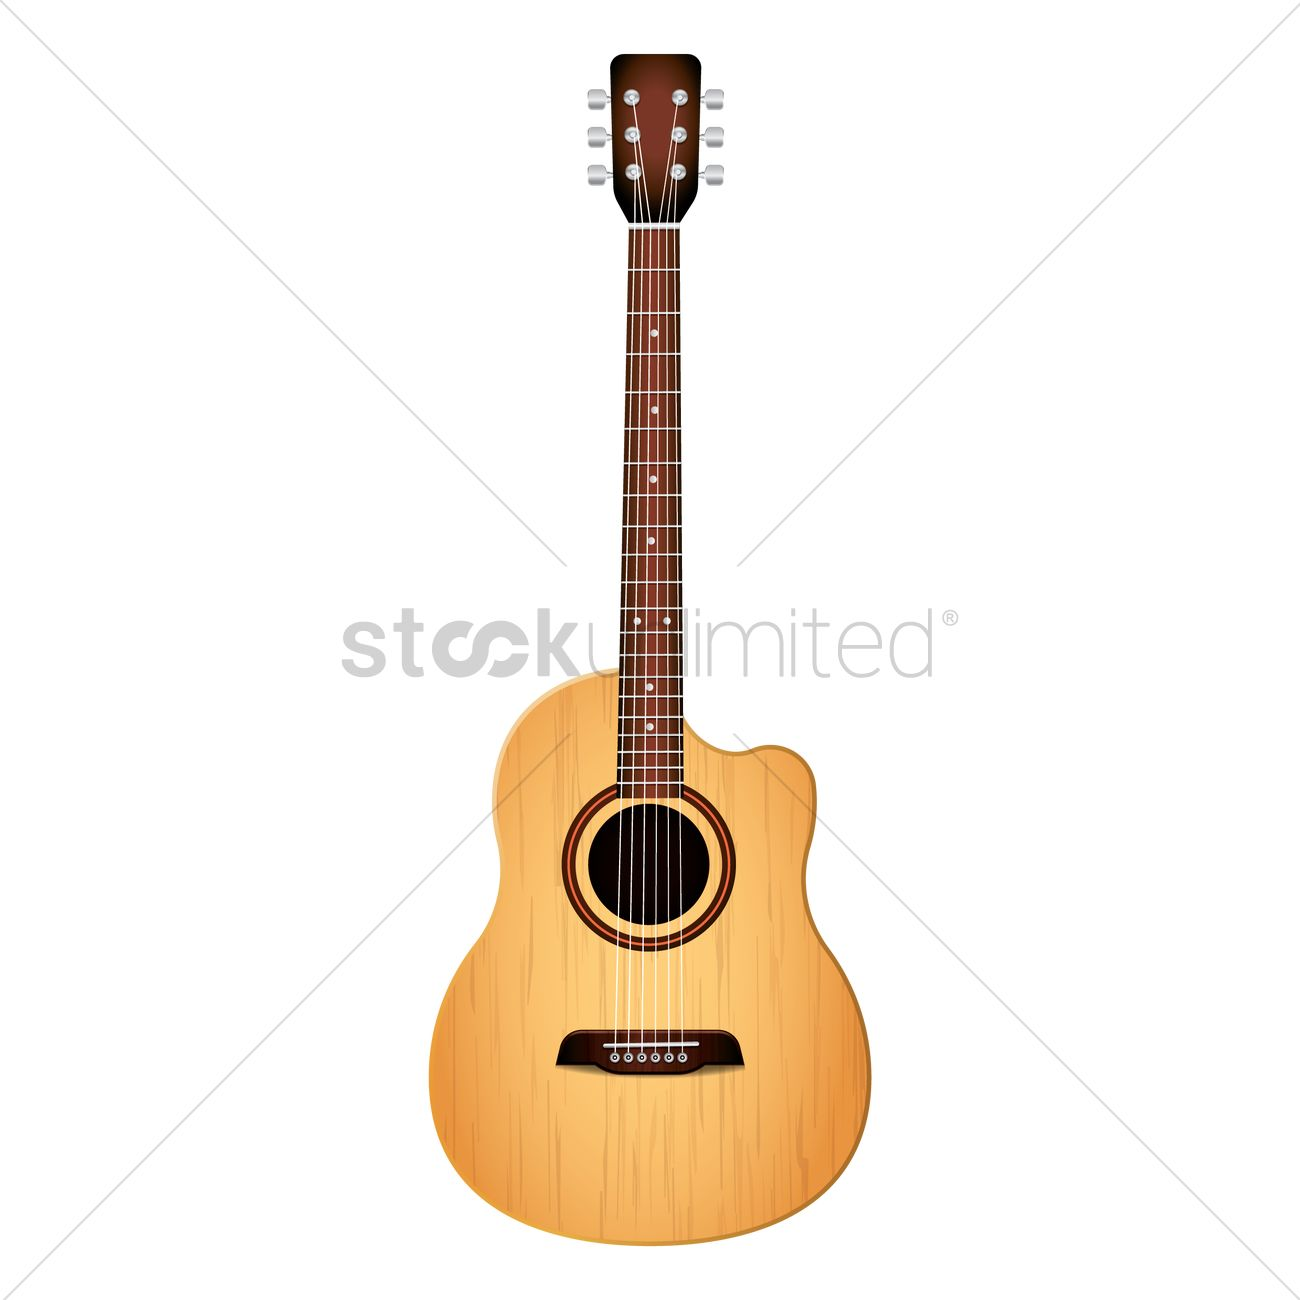 acoustic guitar vector image 1979482 stockunlimited rh stockunlimited com gibson acoustic guitar vector acoustic guitar vector silhouette